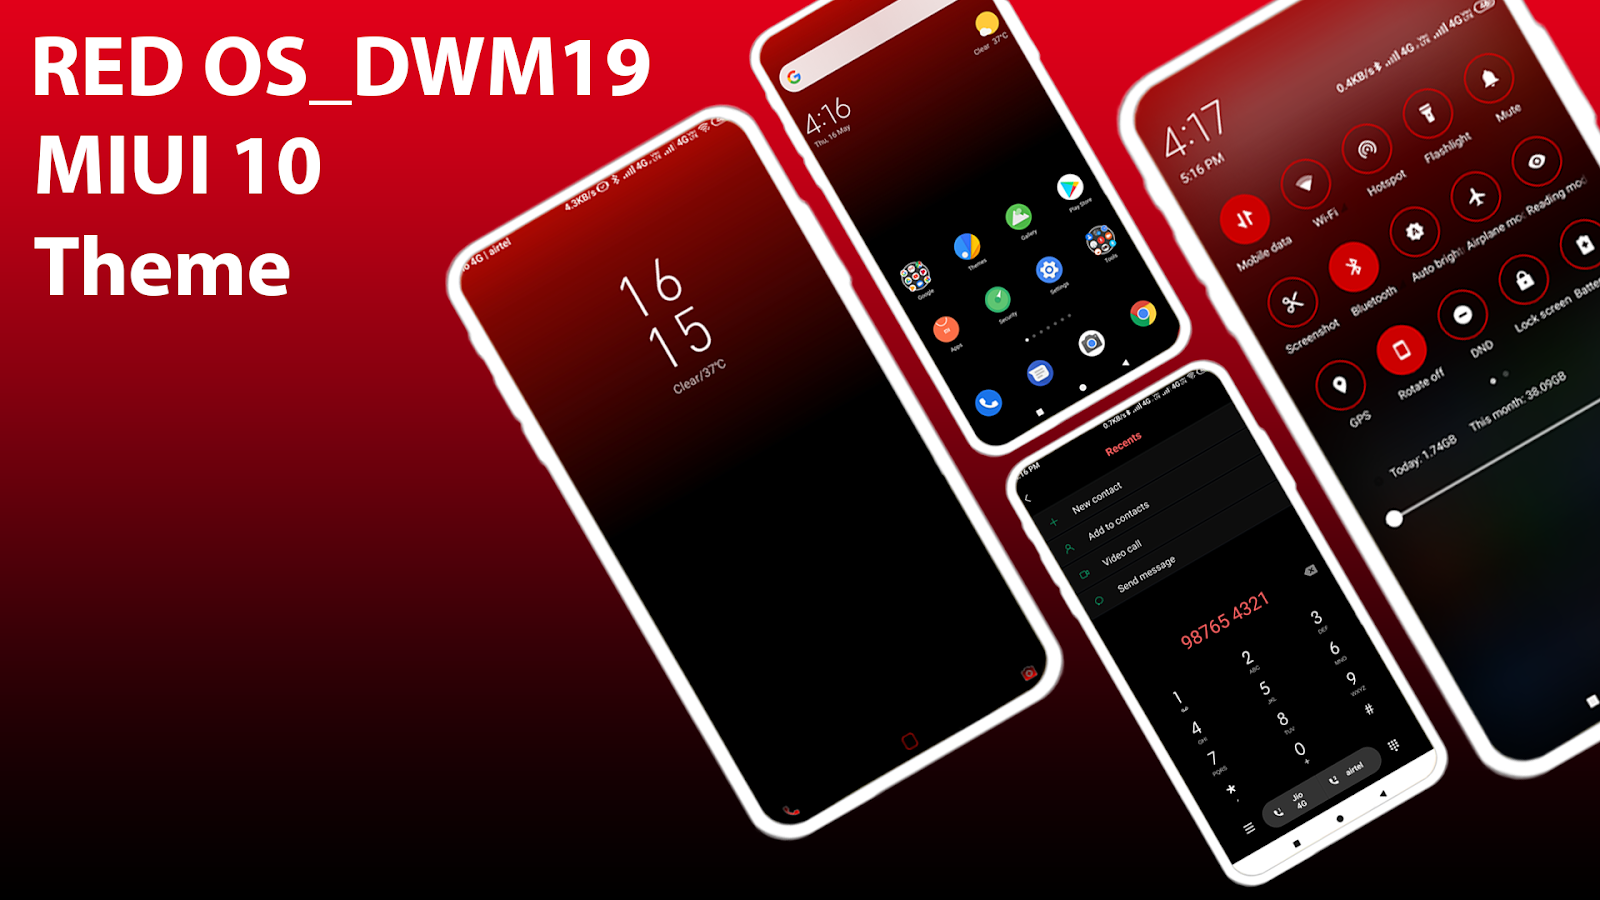 RED OS MIUI 10 Exclusive Theme For Mi Fans! Zhuti Link - MIUI THEMES